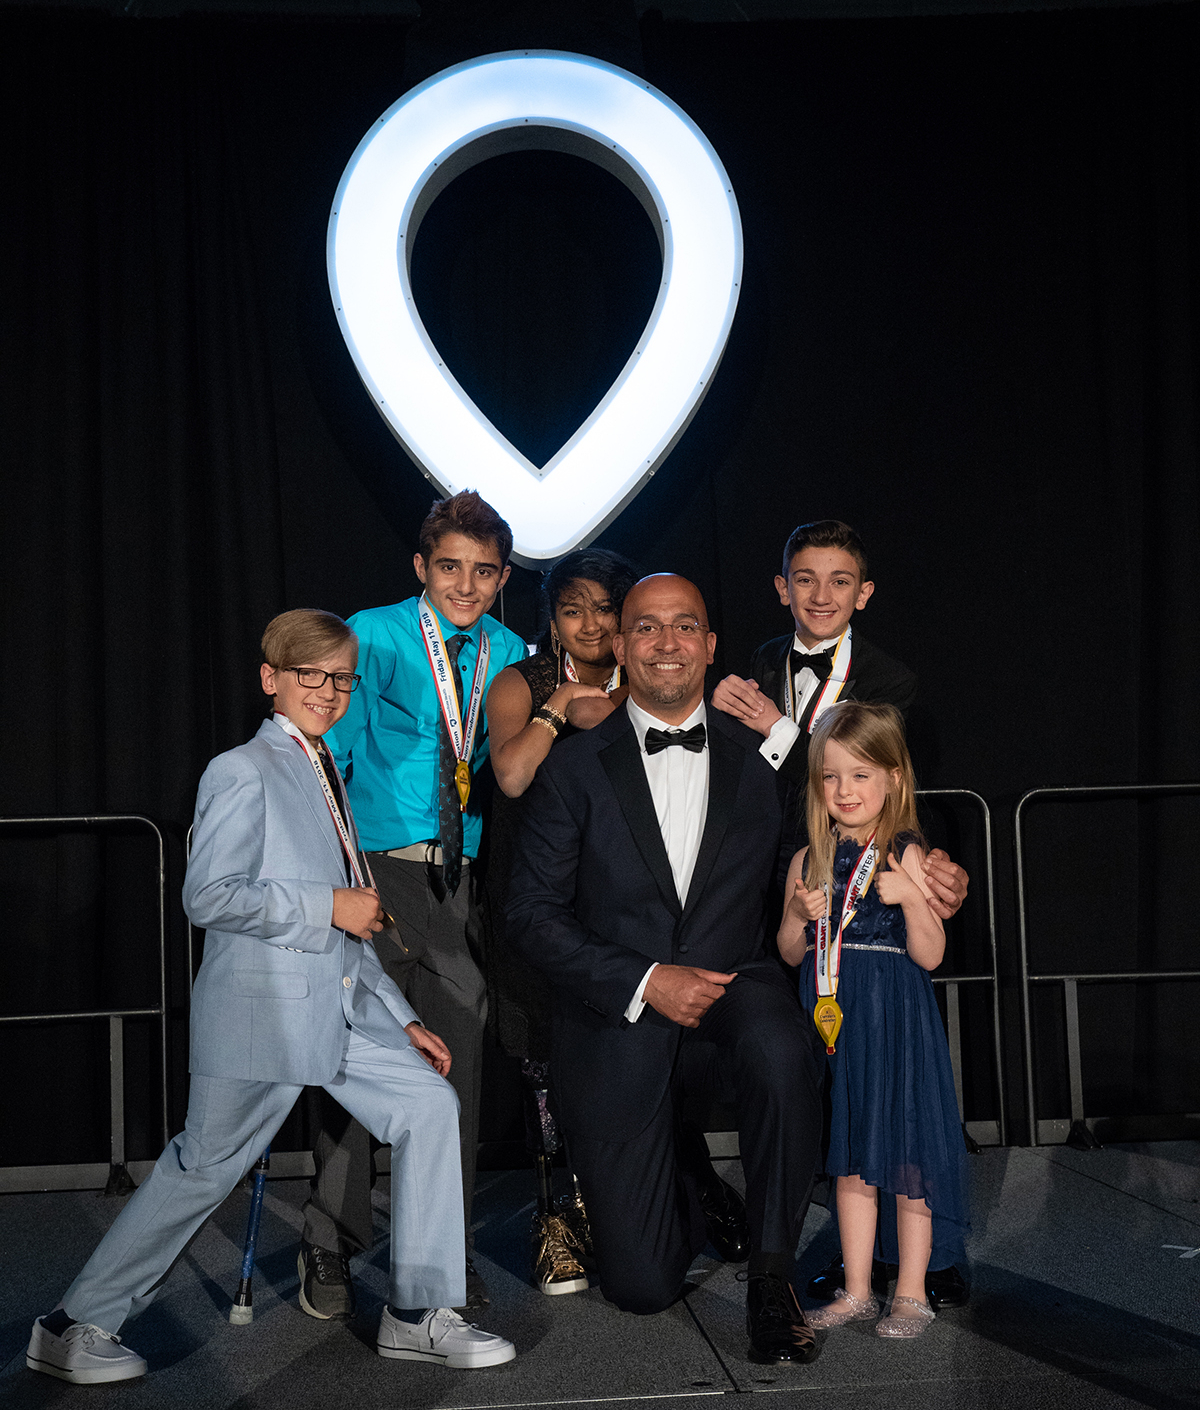 Penn State Football Coach James Franklin, wearing a tuxedo, kneels on one knee. Around him are five young children. An illuminated CMN logo is in the background.